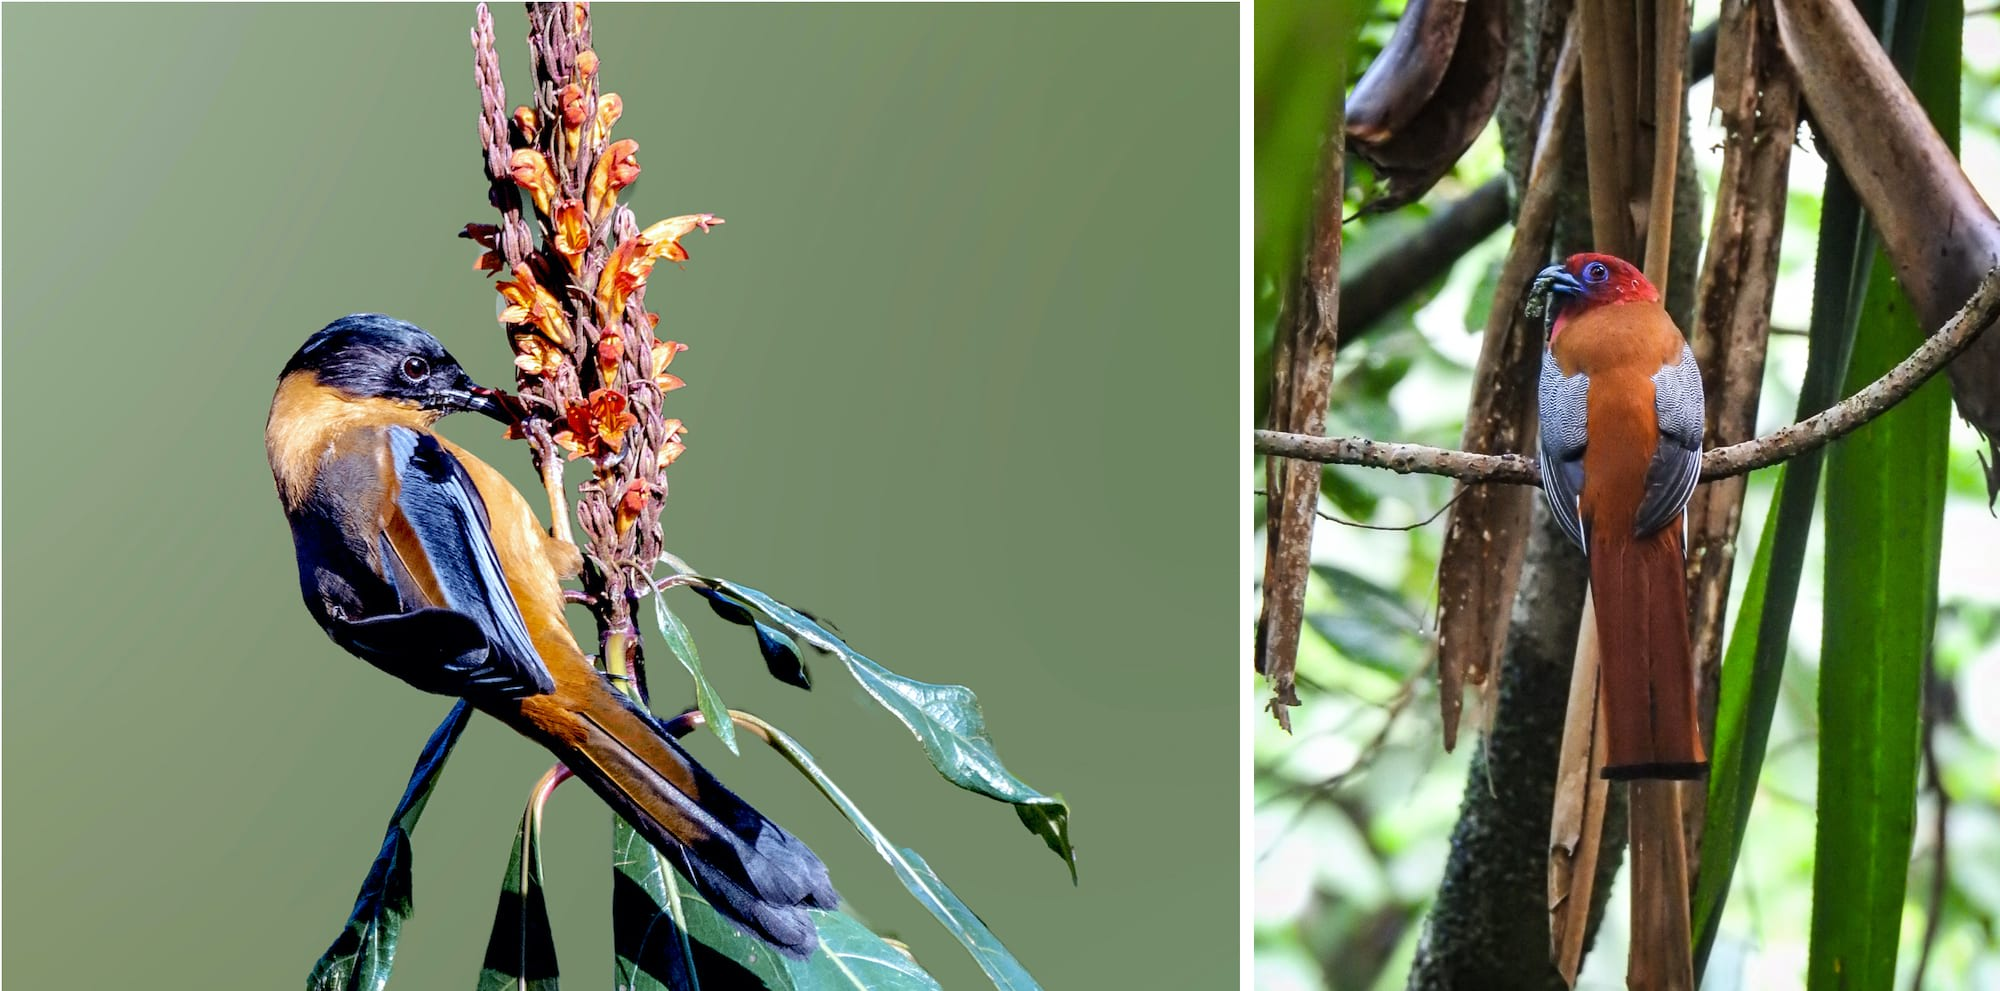 (Left) Bird enthusiasts have recorded the rufous sibia with its gorgeous blue wingtips in Latpanchar. (Right) Red-headed trogons have often been spotted and photographed within the village as well. Photo: suvro06/Shutterstock (left), Parag Gurung (right)